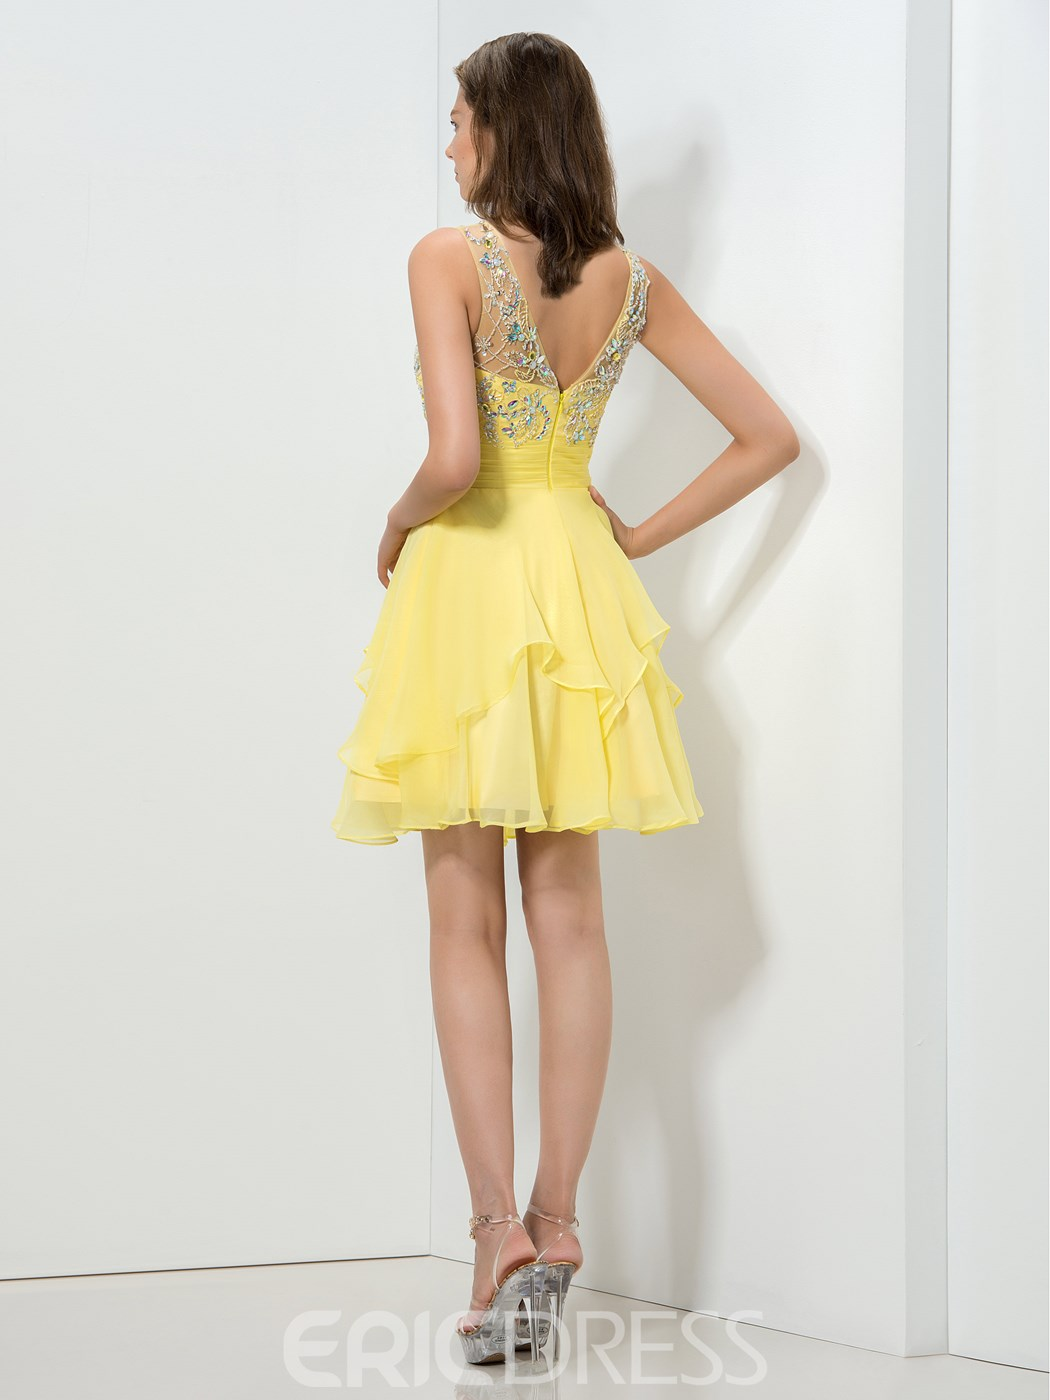 Ericdress bijou cou perles paillettes court Homecoming robe